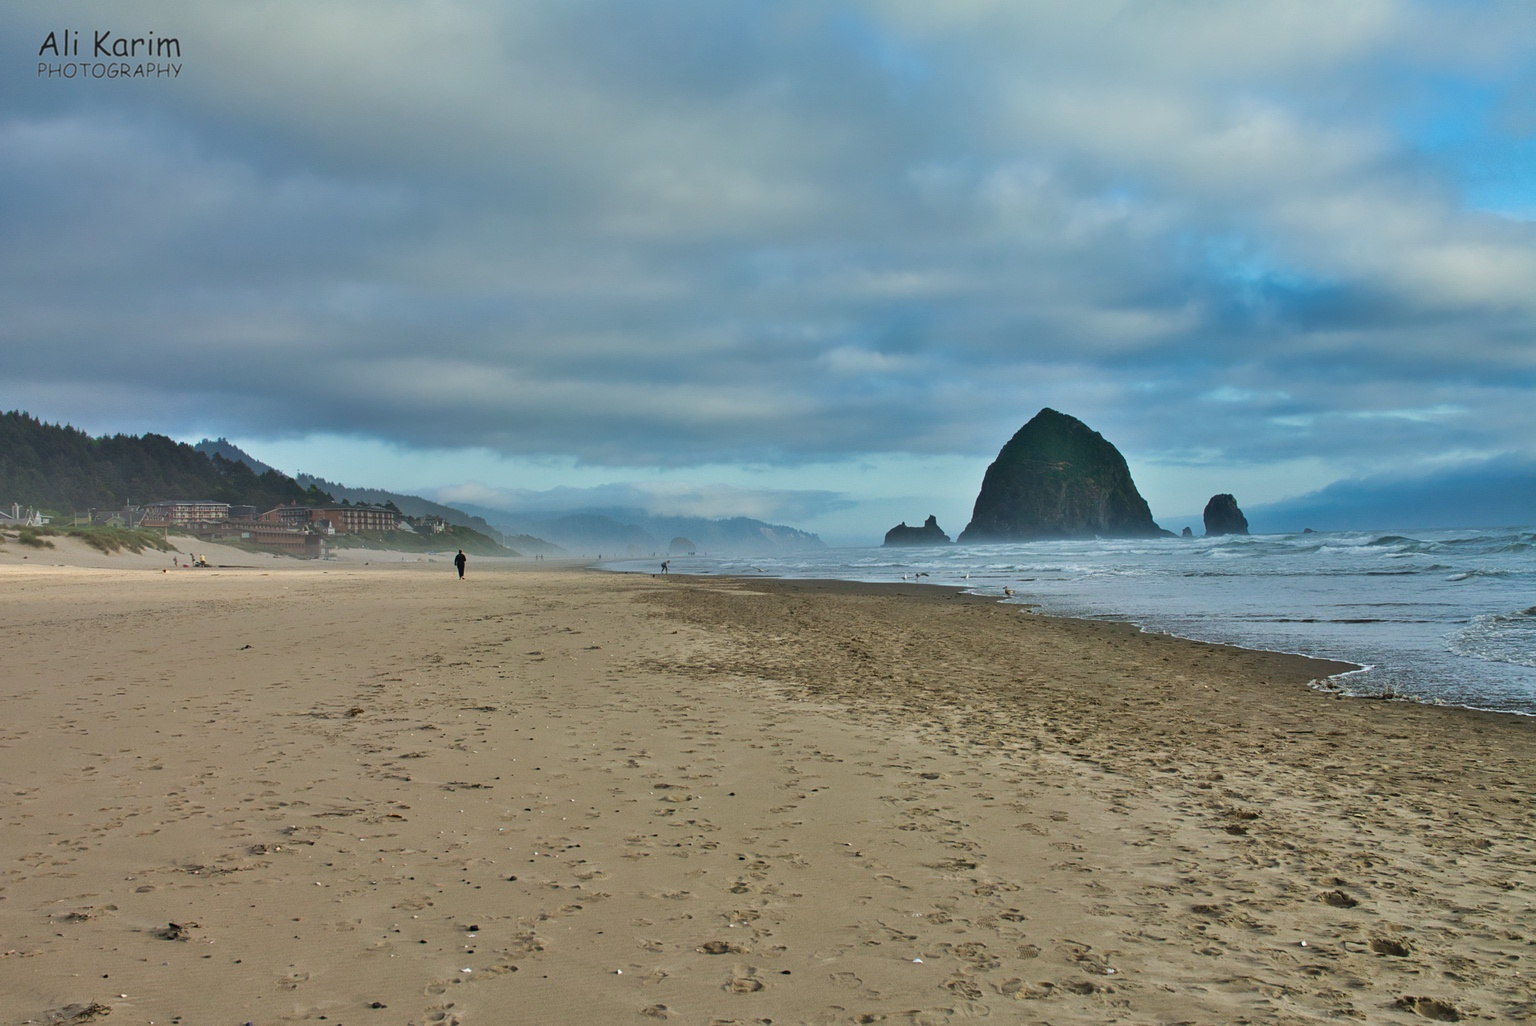 Oregon Coast Hwy 101 Haystack Rock at Cannon Beach